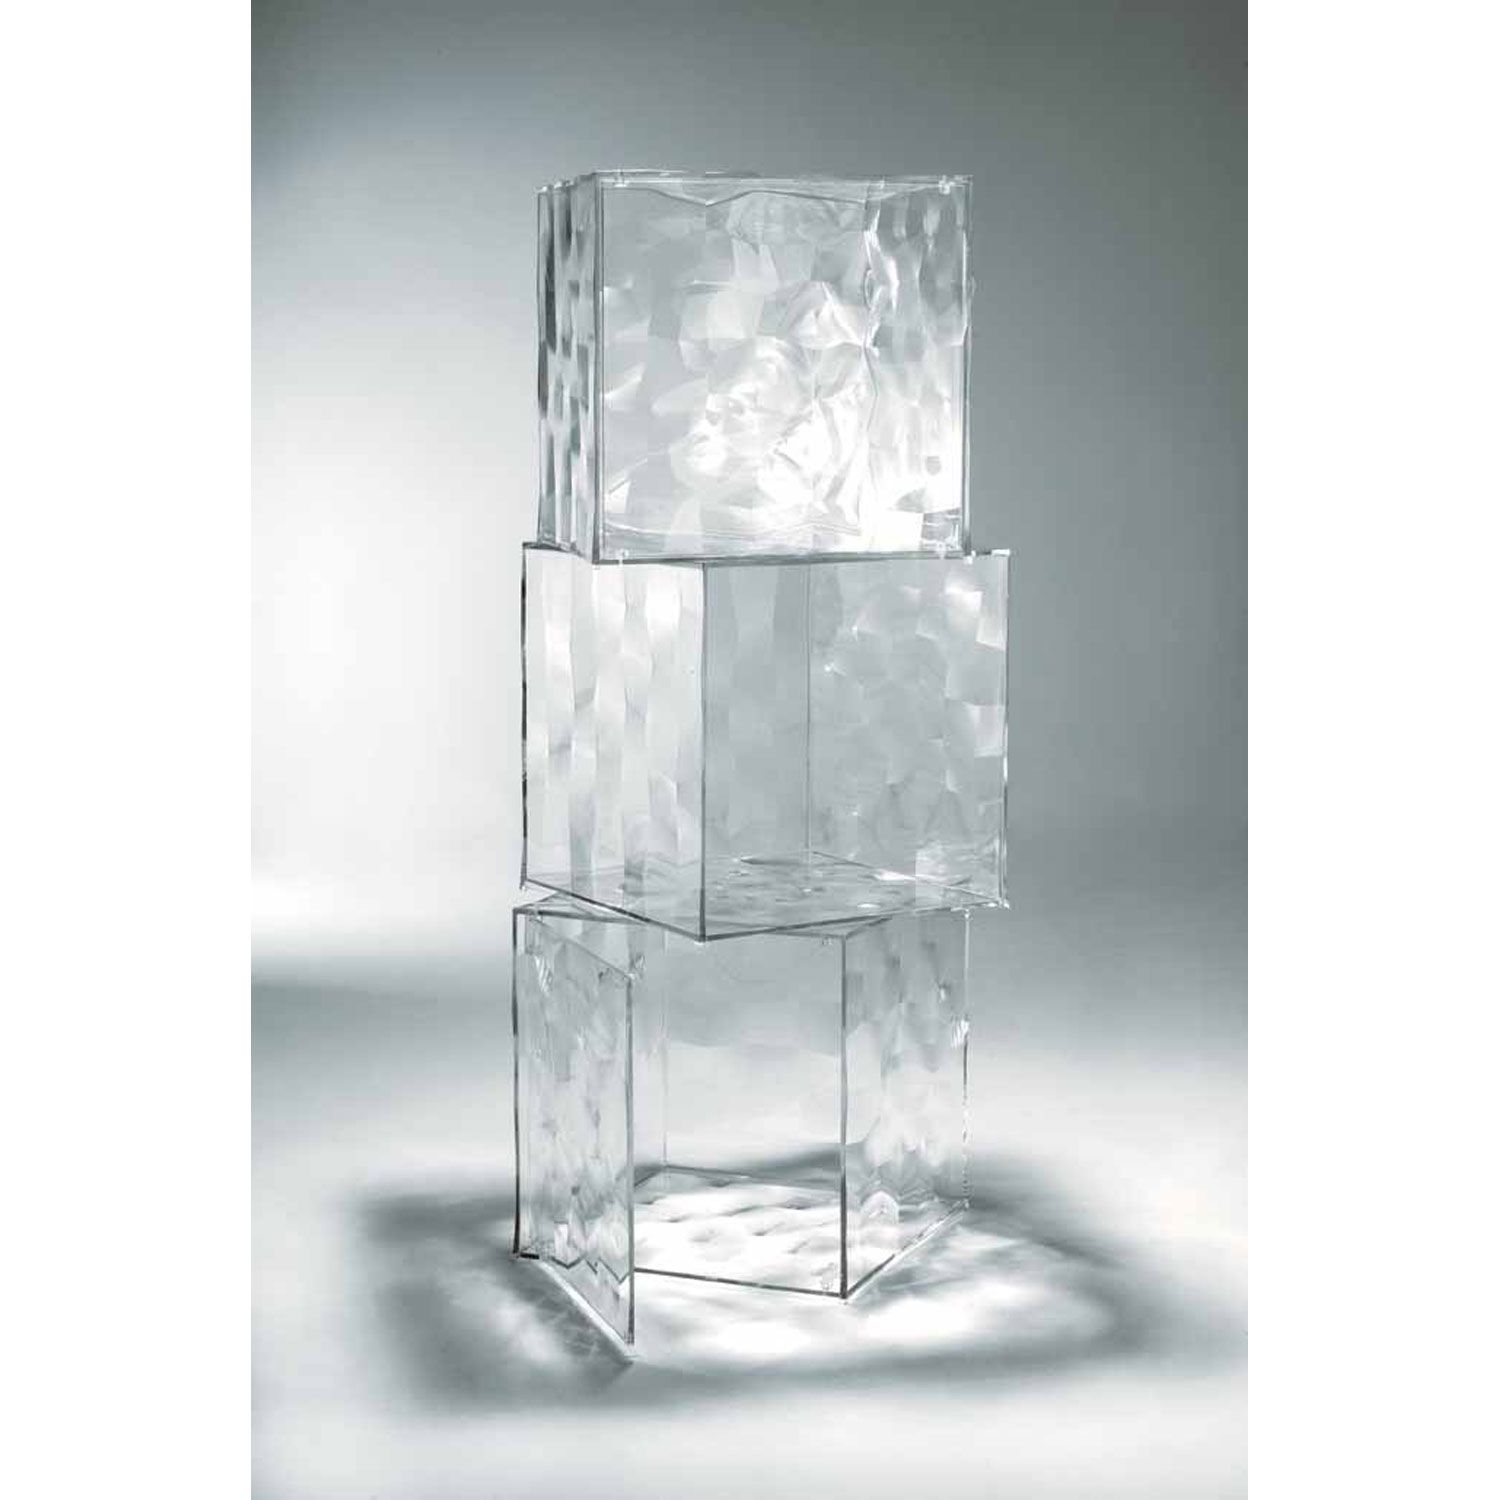 The Kartell Optic Cube Storage Designed By Patrick Jouin Is An Exciting  Faceted Cube With Its Transparent And Mirrored Parts That Create A Special  Reflected ...